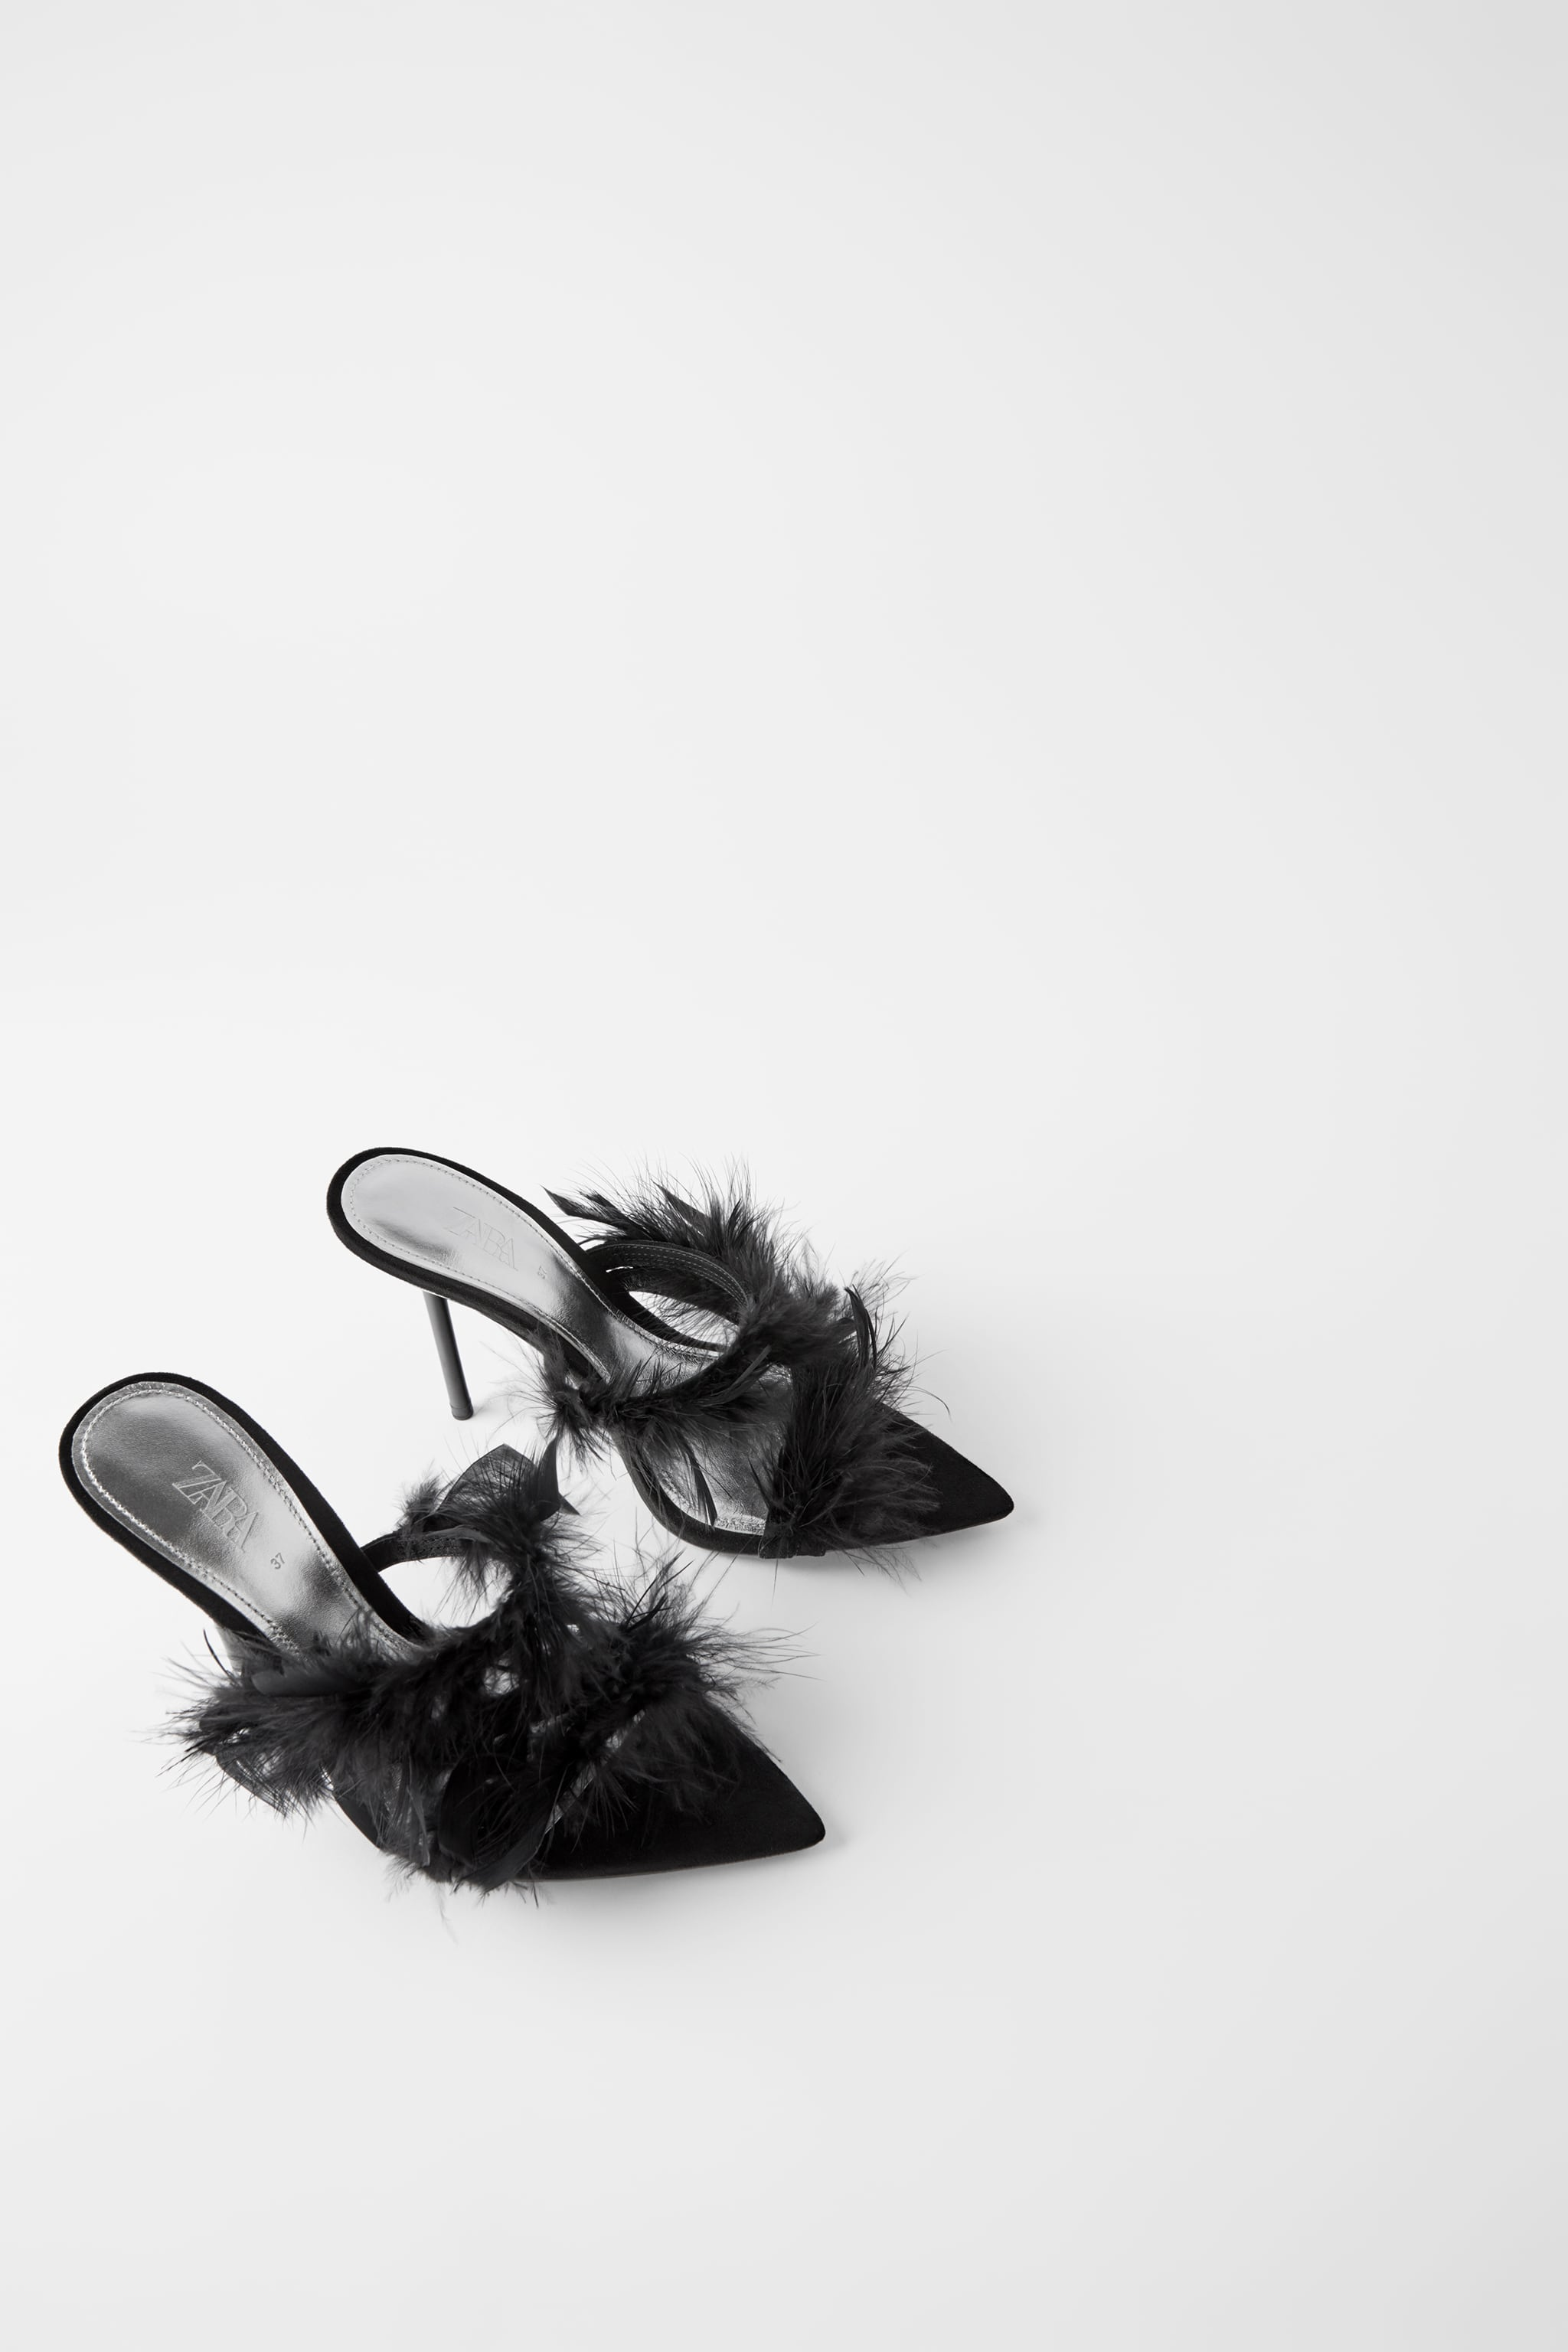 Zara BLUE COLLECTION FEATHERED LEATHER HEELS